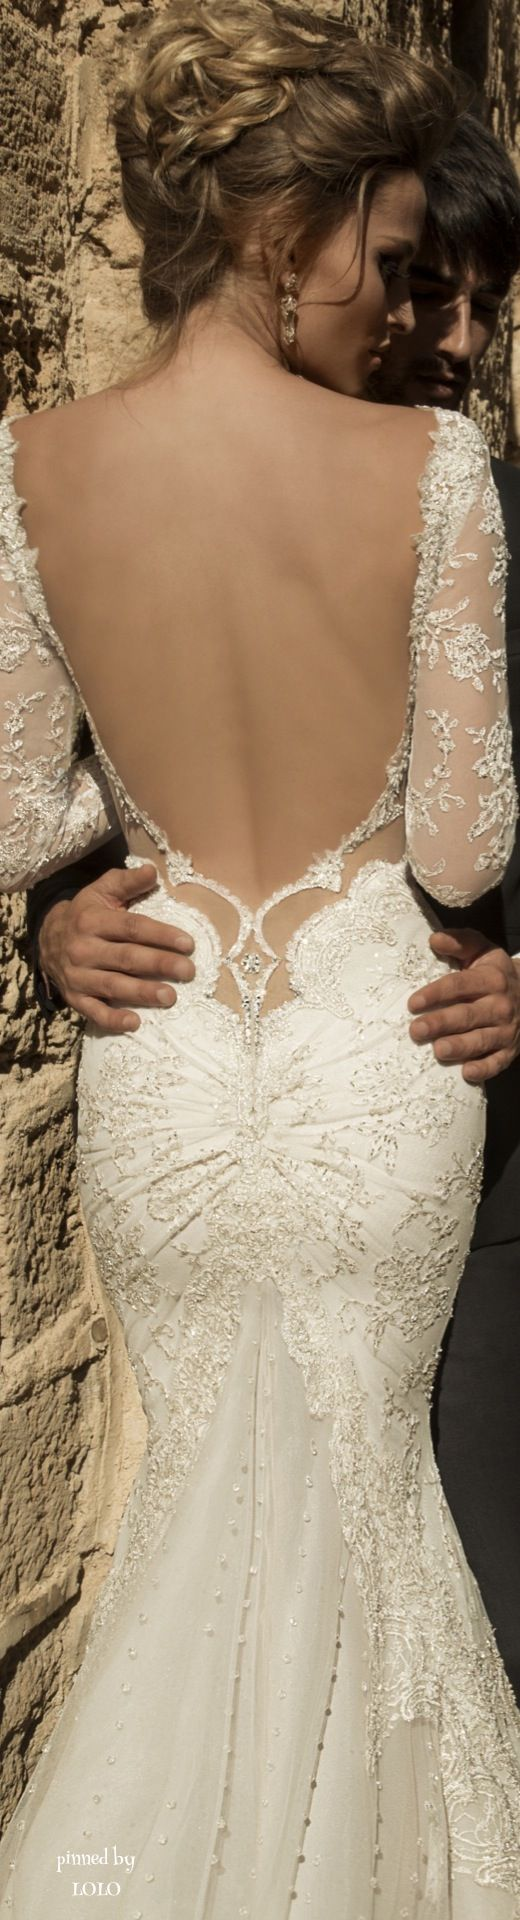 I'd never wear a dress with a back that low even if I had that figure but the detailing is beautiful.